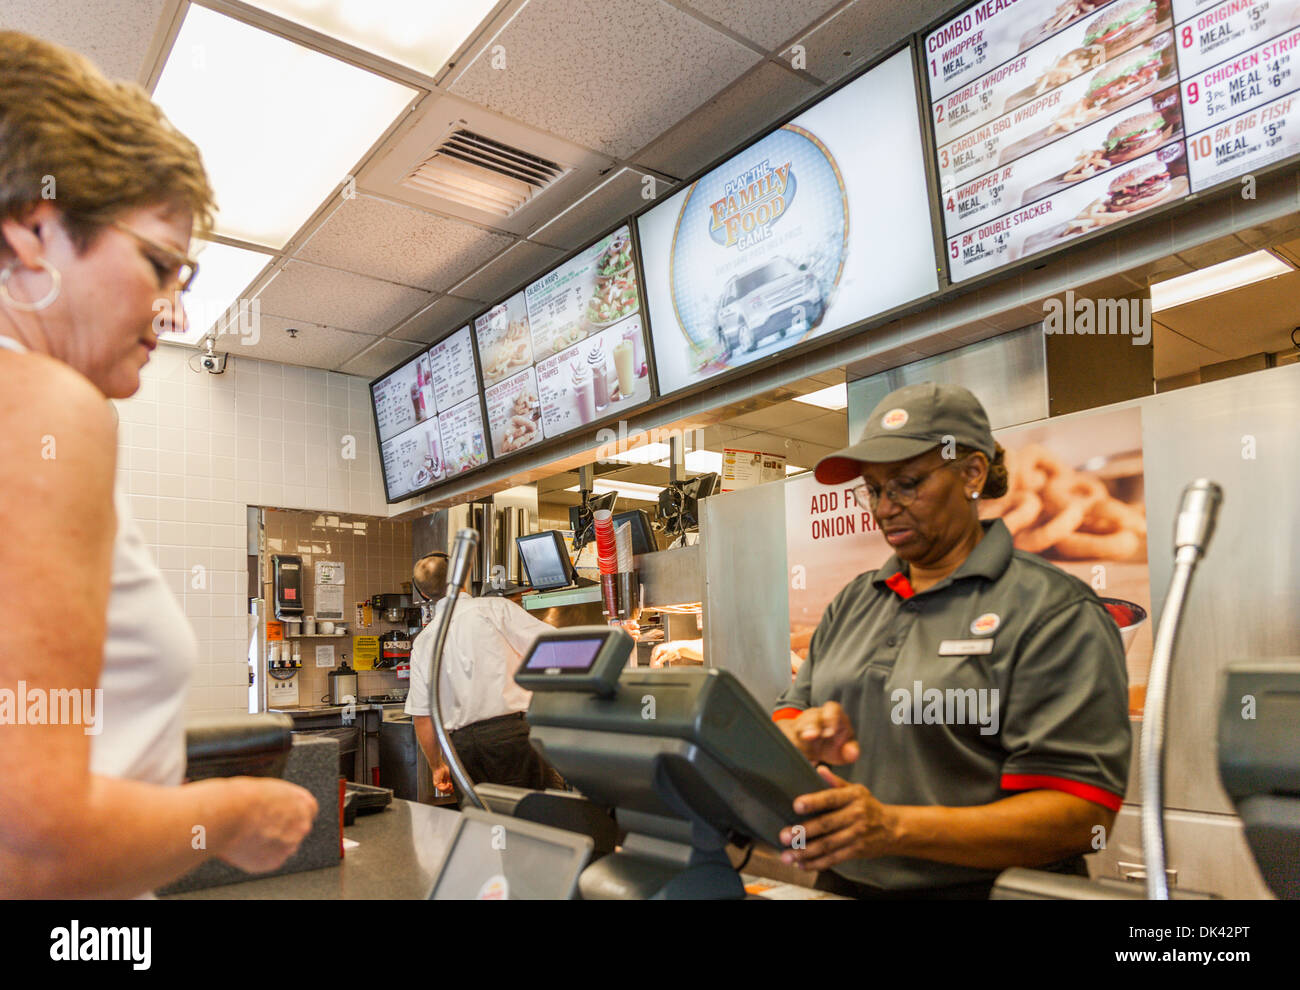 Female customer ordering fast food in a Burger King restaurant - Stock Image